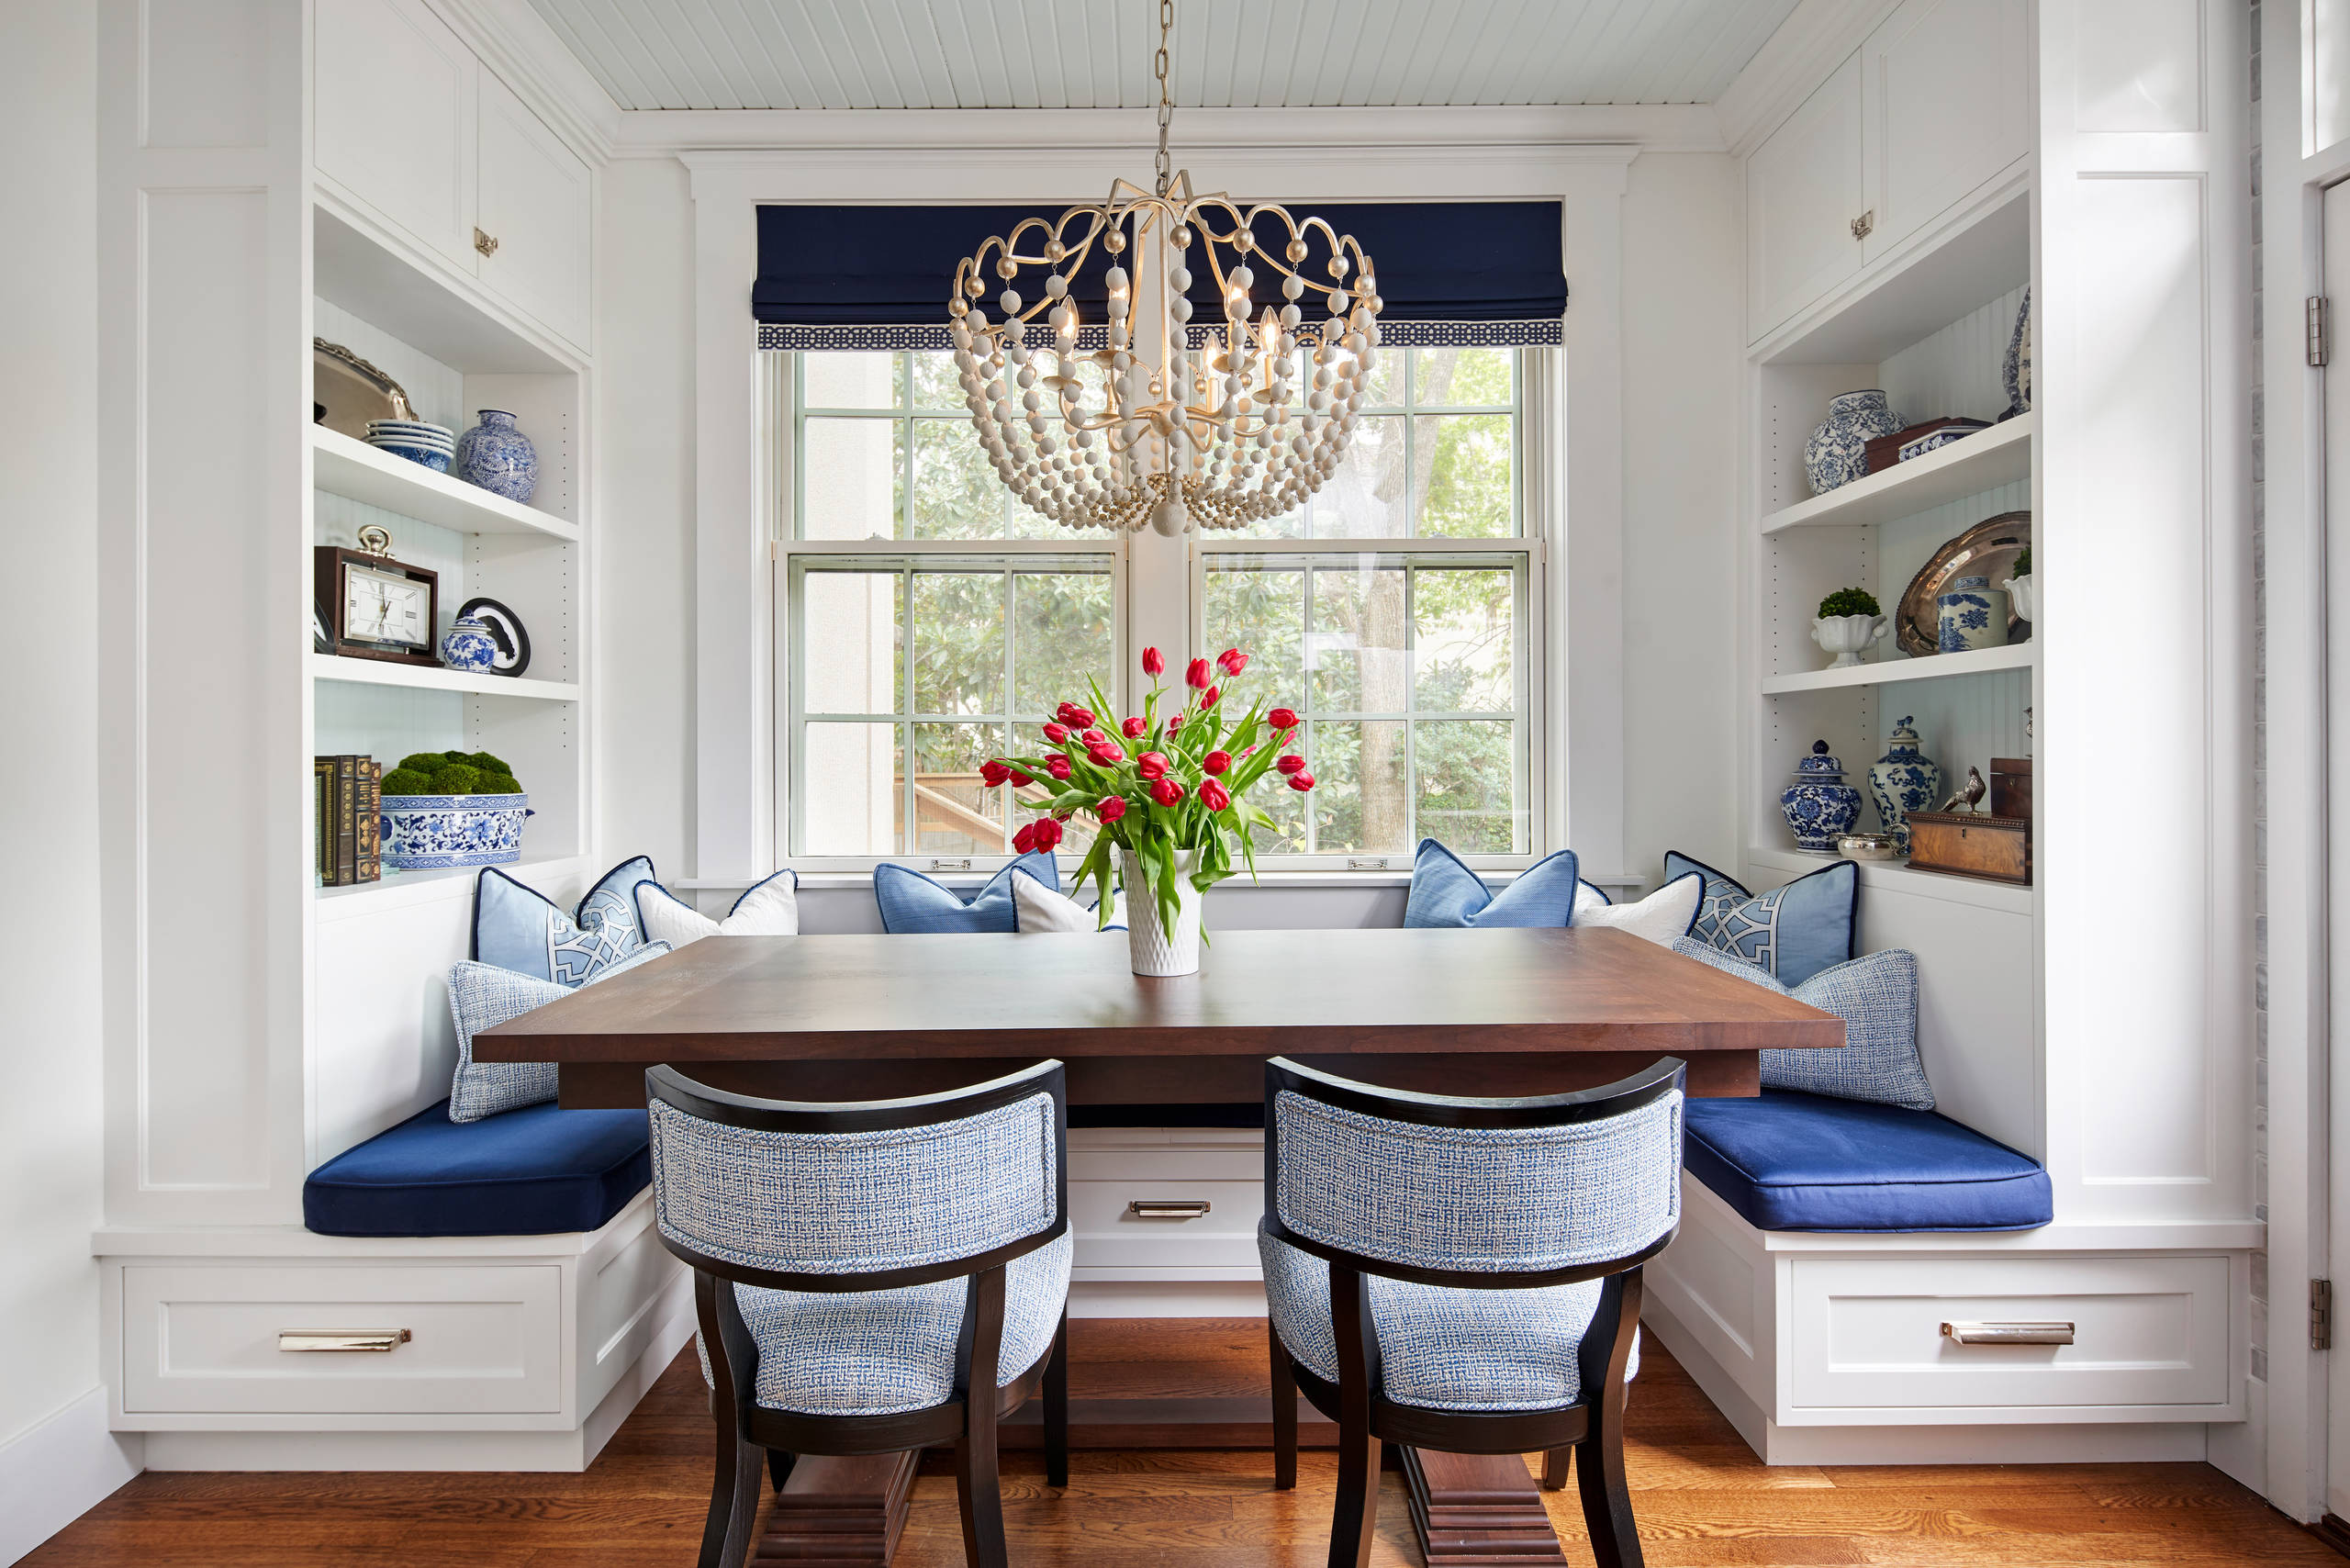 75 Beautiful Traditional Kitchen Dining Room Combo Pictures Ideas June 2021 Houzz